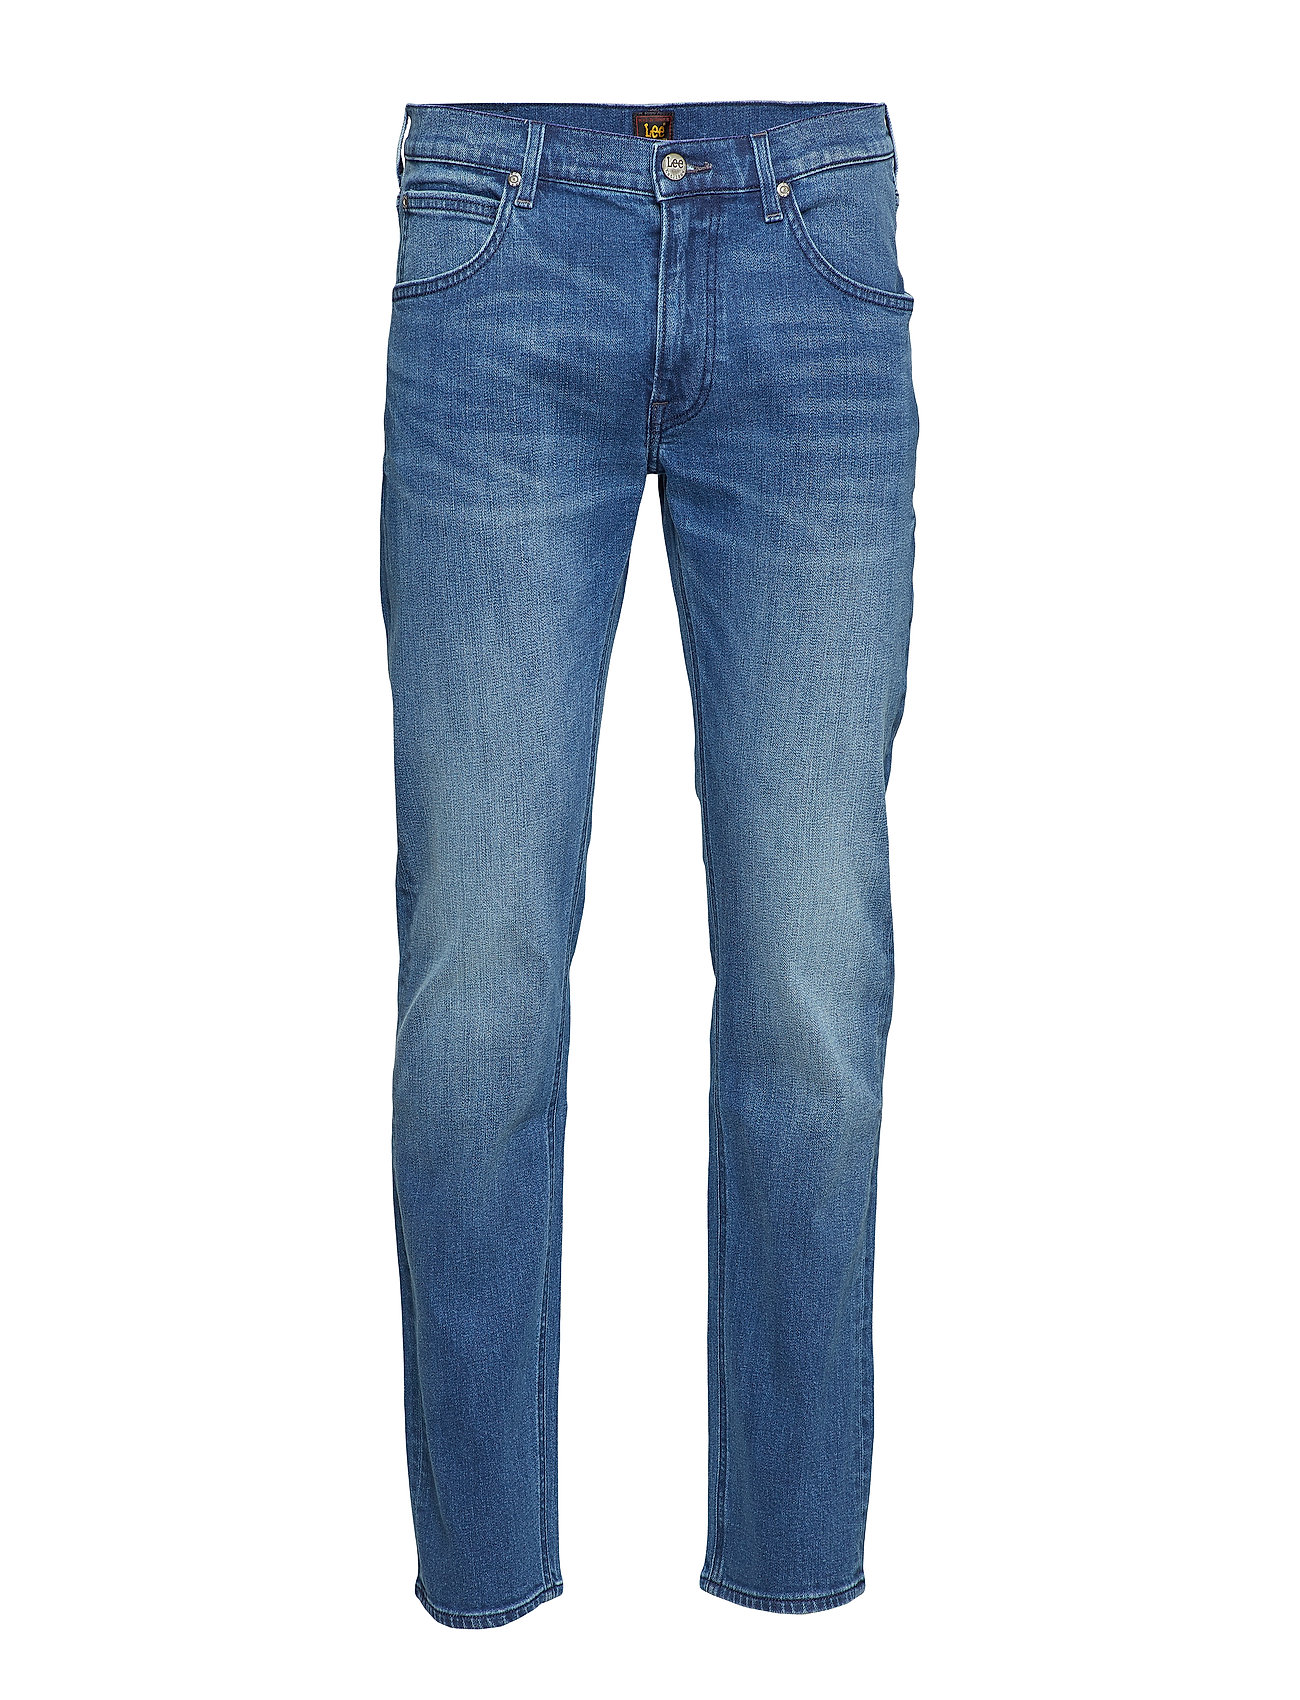 Lee Jeans DAREN ZIP FLY - TIME OUT